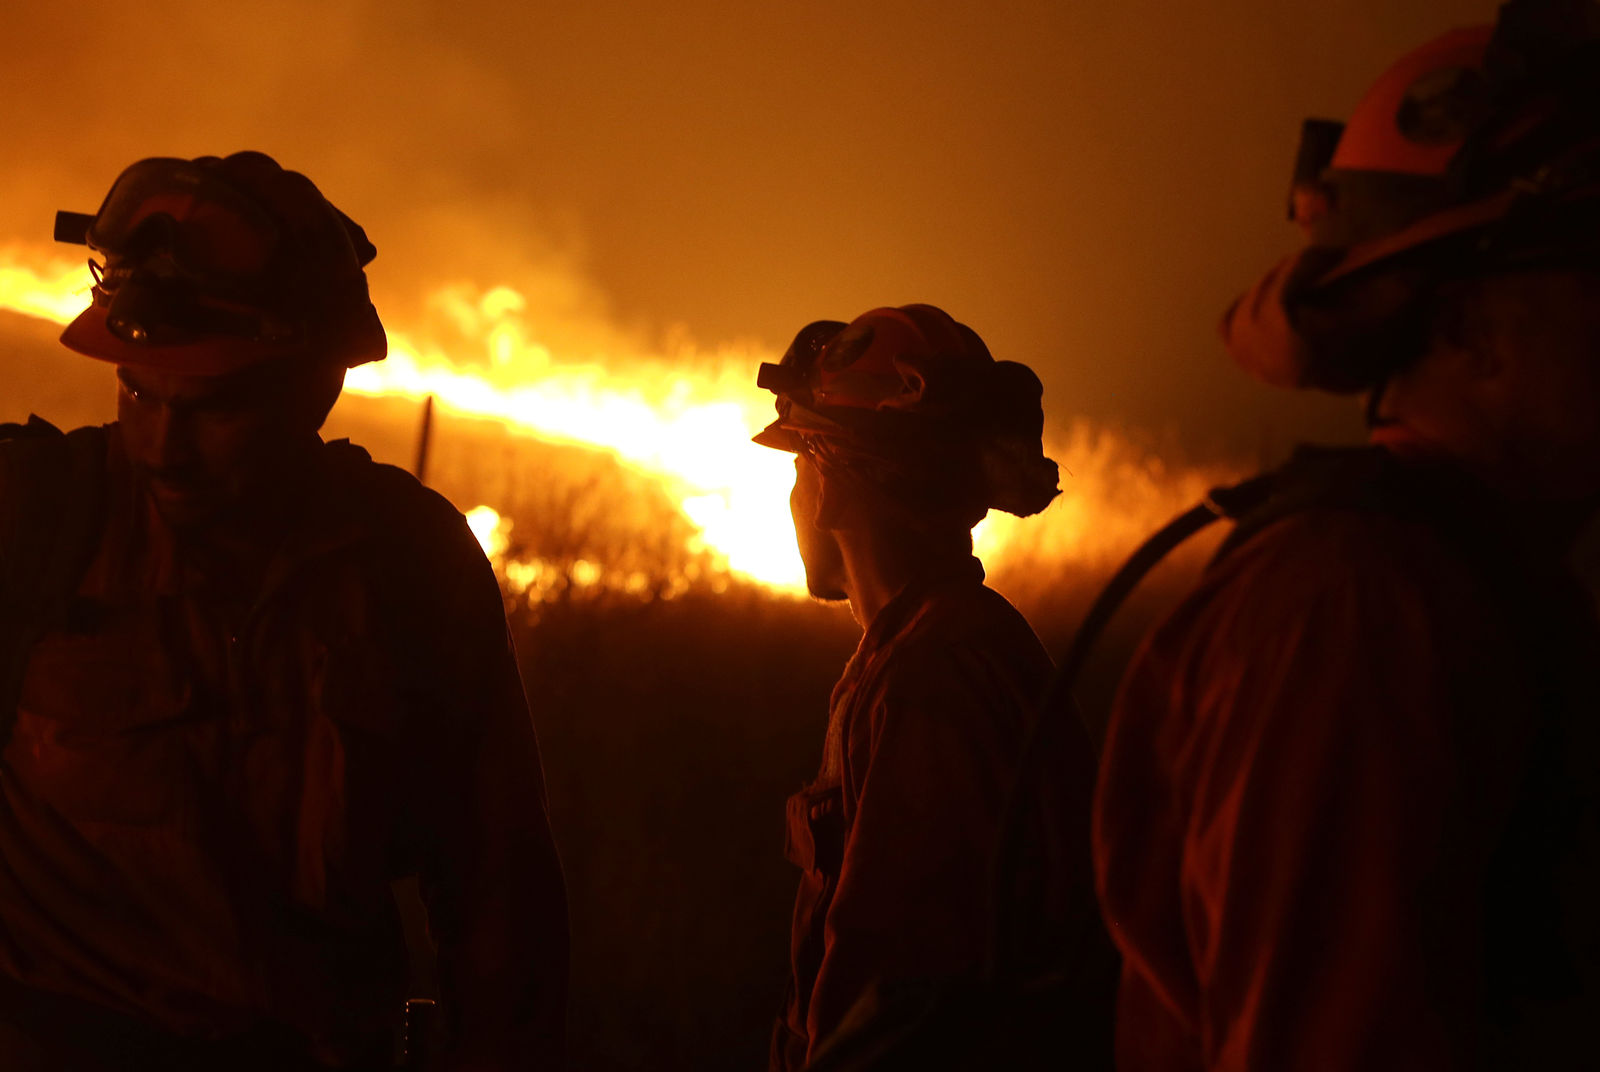 FILE - In this Sept. 12, 2015 file photo, California Department of Corrections and Rehabilitation inmates stand guard as flames from the Butte Fire approach a containment line near San Andreas, Calif. Attorneys representing 14 local governments said Tuesday, June 18, 2019 that they had reached a $1 billion settlement with California utility Pacific Gas & Electric for a series of fires dating to 2015. (AP Photo/Rich Pedroncelli, File)